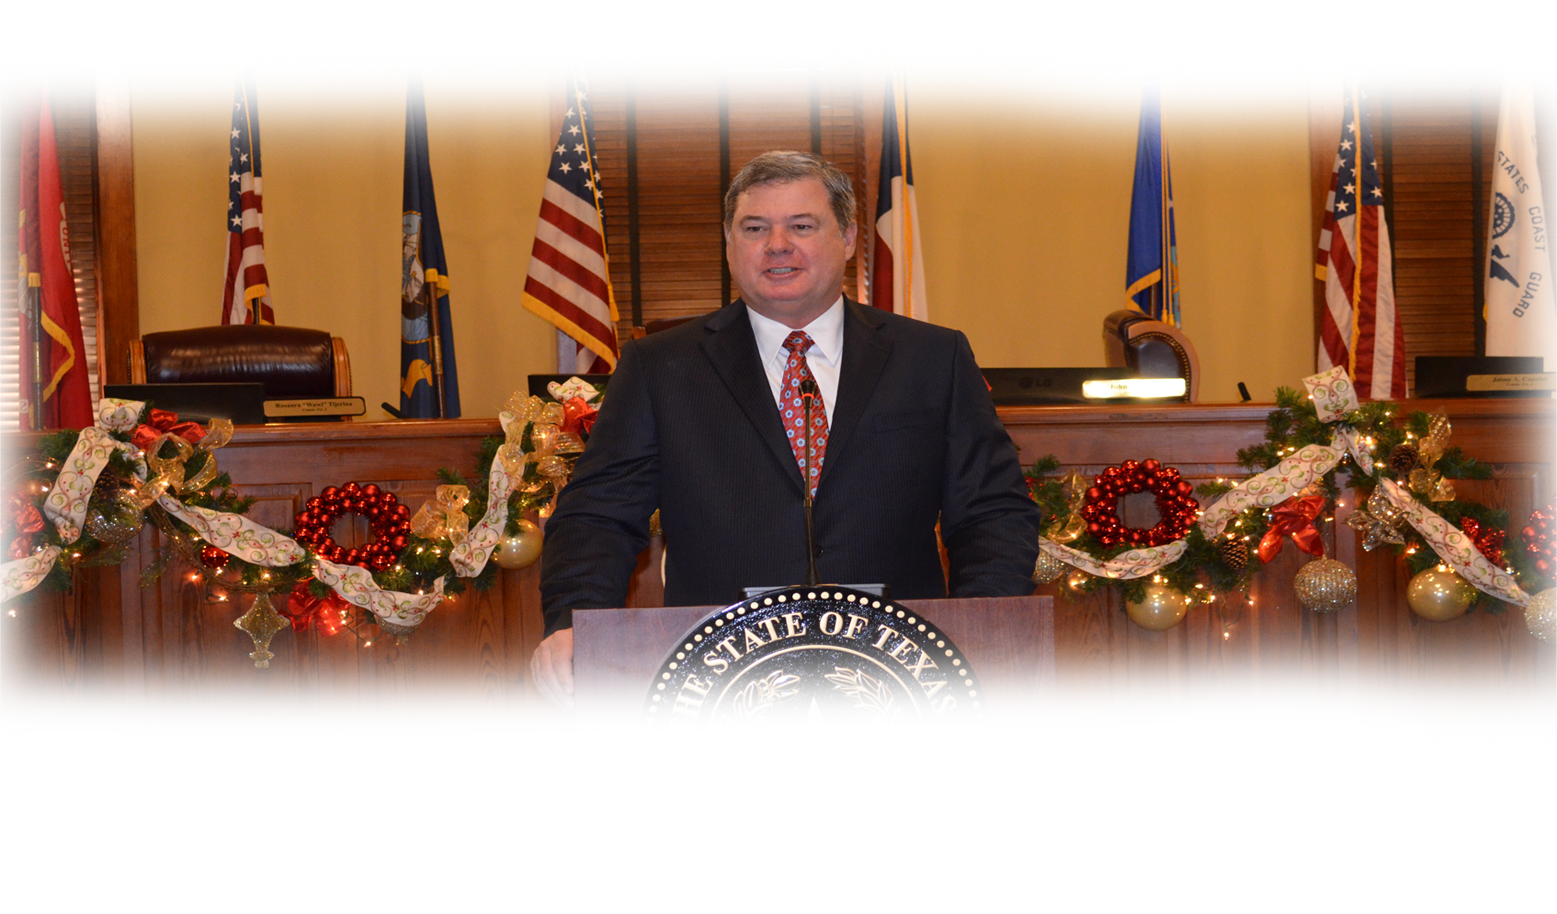 Commissioner John Galo picture at a podium at Commissioner's Court